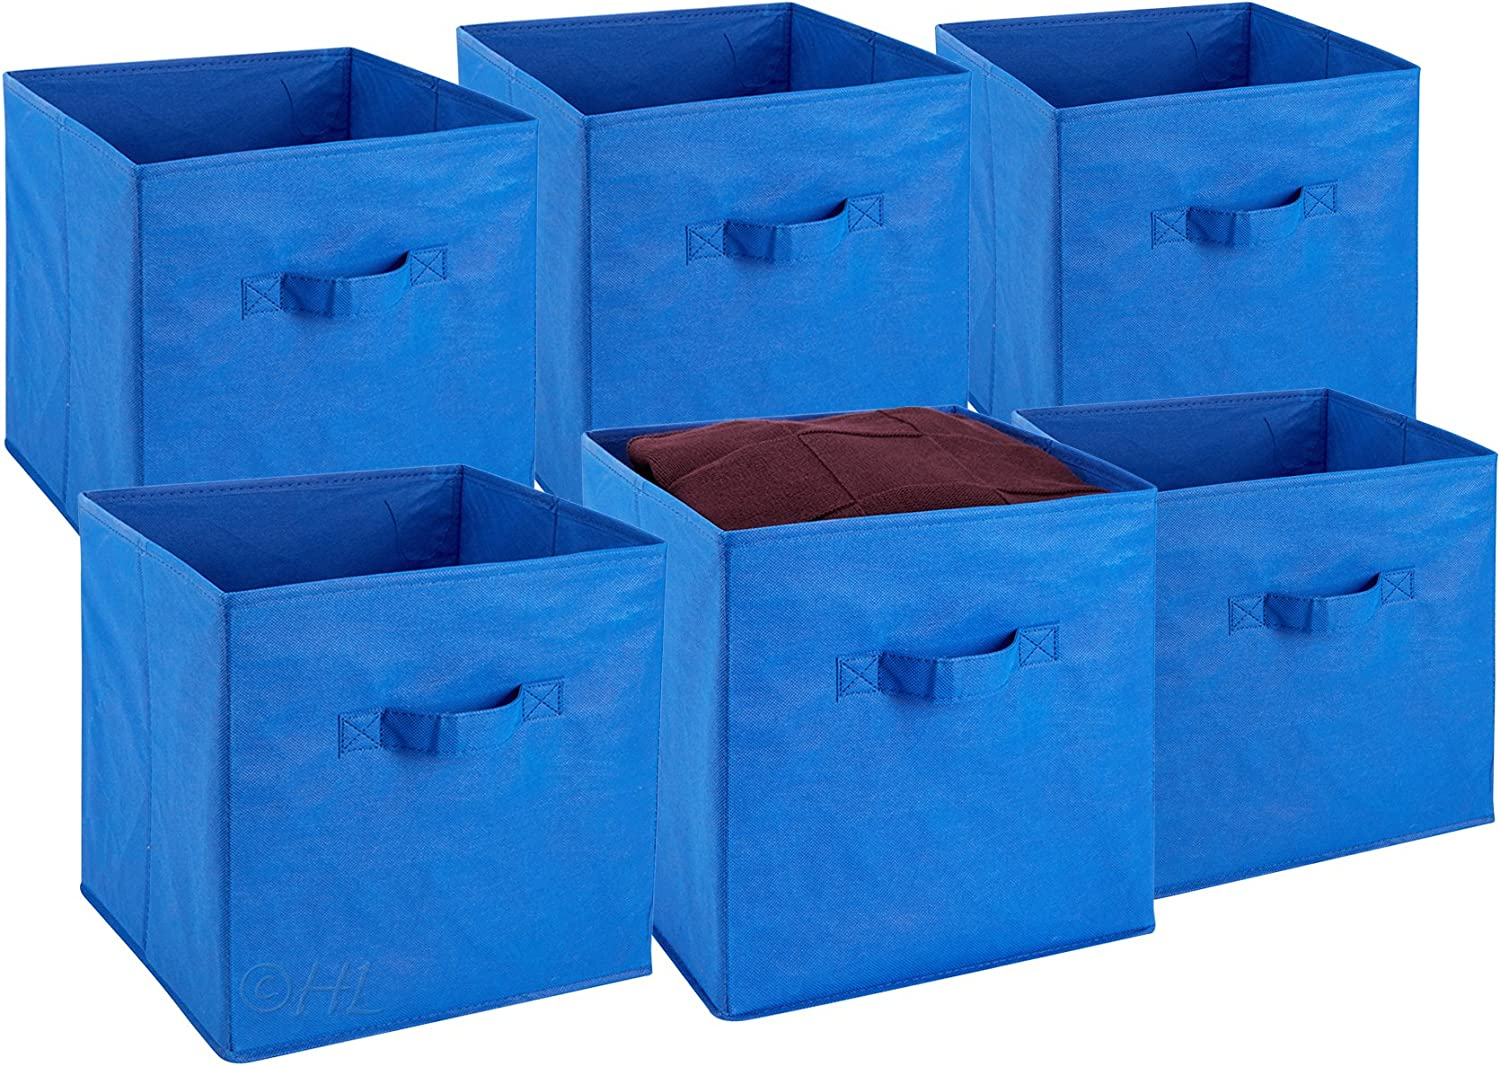 Foldable Cube Storage Bins - 6 Pack - These Decorative Fabric Storage Cubes are Collapsible and Great Organizer for Shelf, Closet or Underbed. Convenient for Clothes or Kids Toy Storage (Blue)